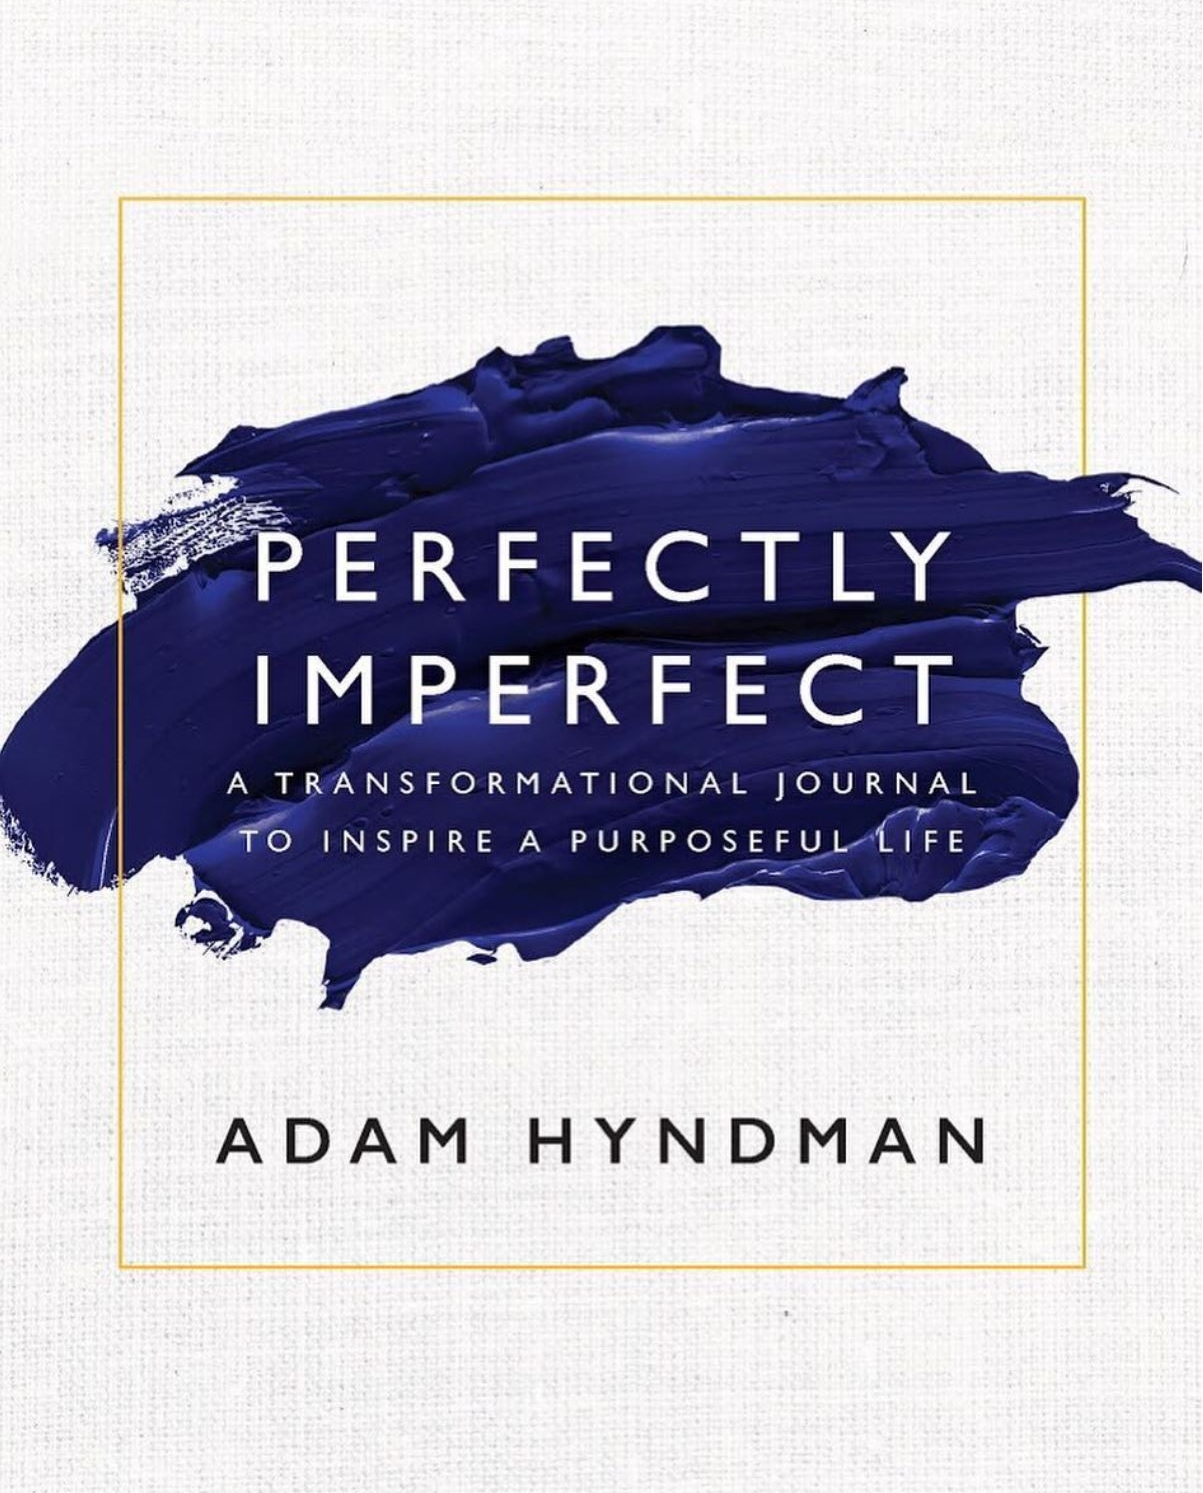 Perfectly Imperfect book cover.JPG